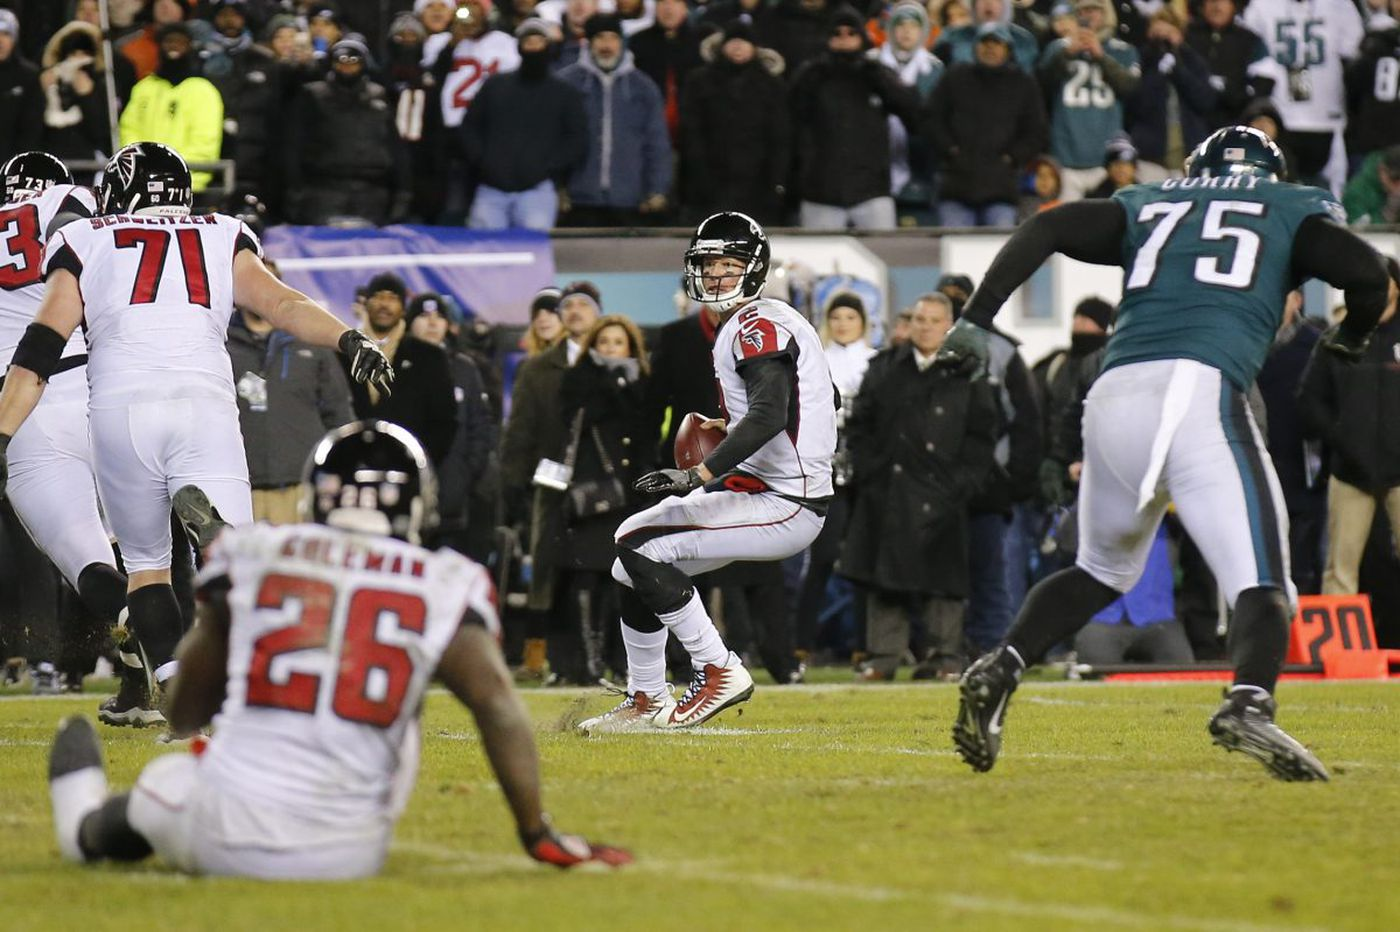 Eagles beat Falcons: A look inside that final play